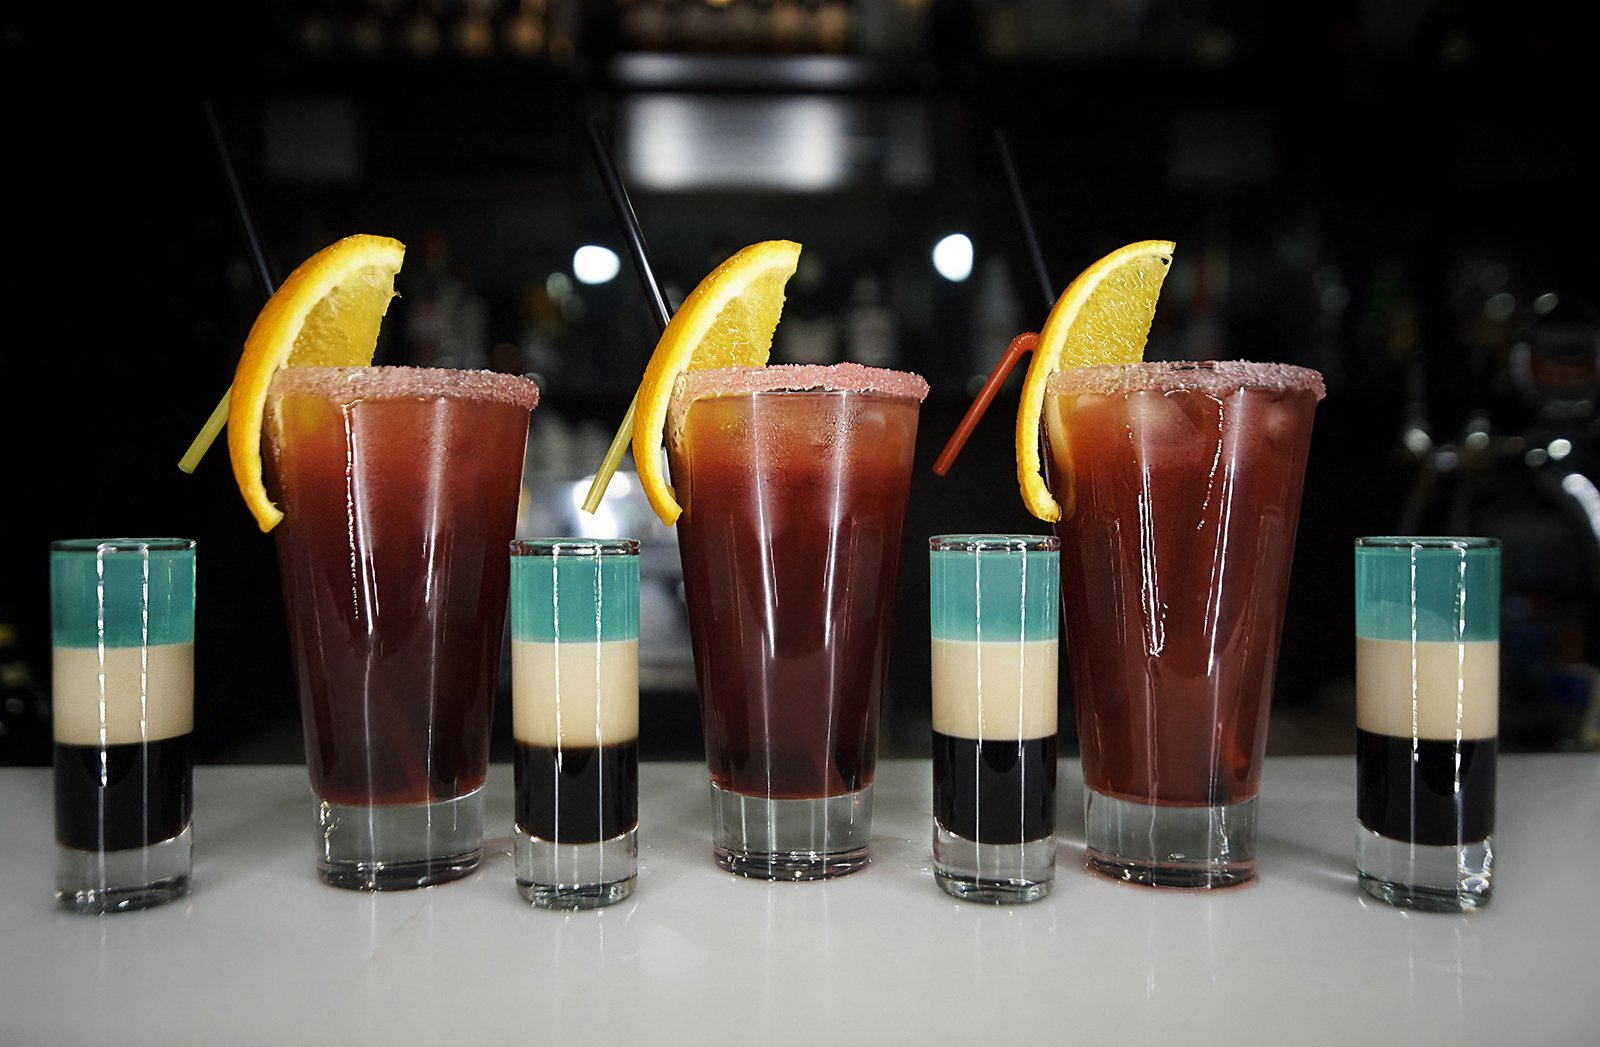 Multicolored shots and cocktails on a bar counter against a dark background